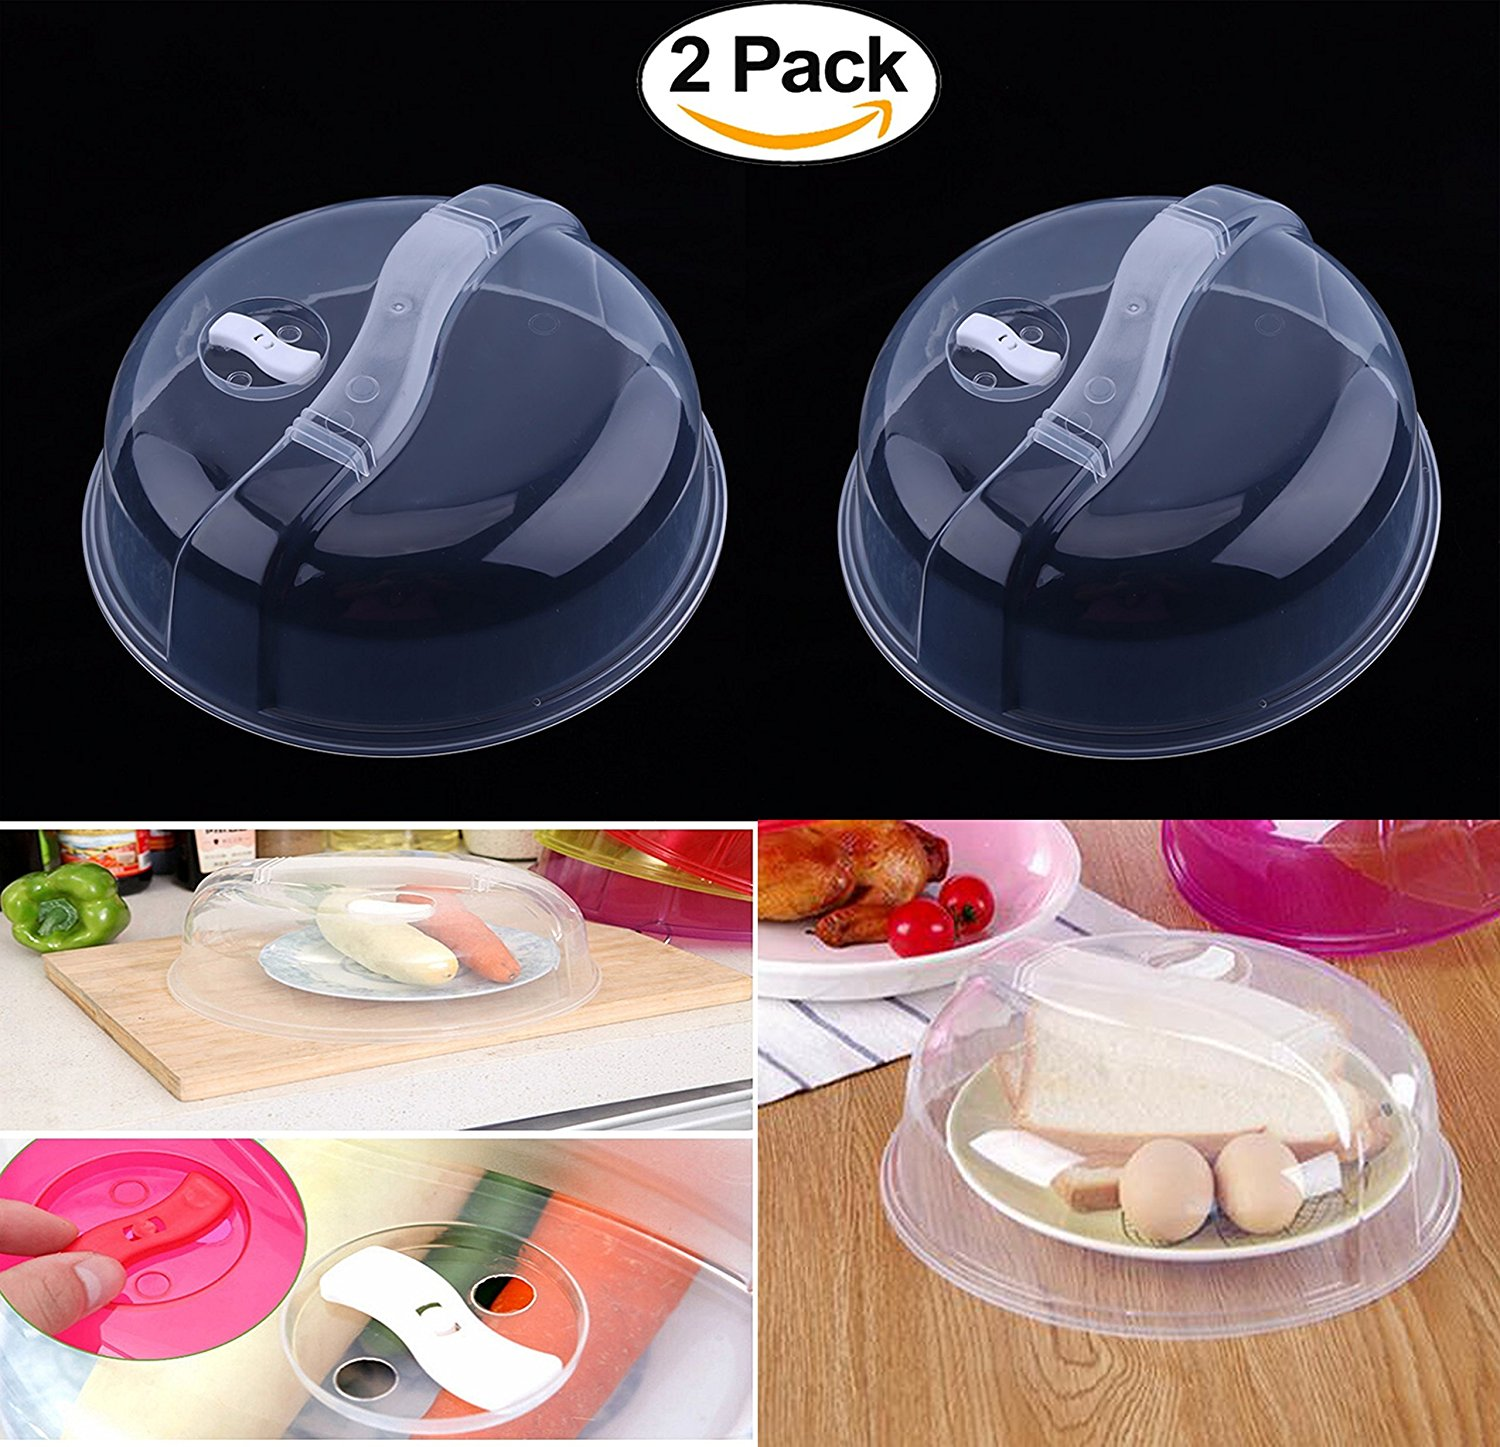 2 Pack Microwave Lid Fresh-keeping cover for refrigerator Special heating oil proof cover